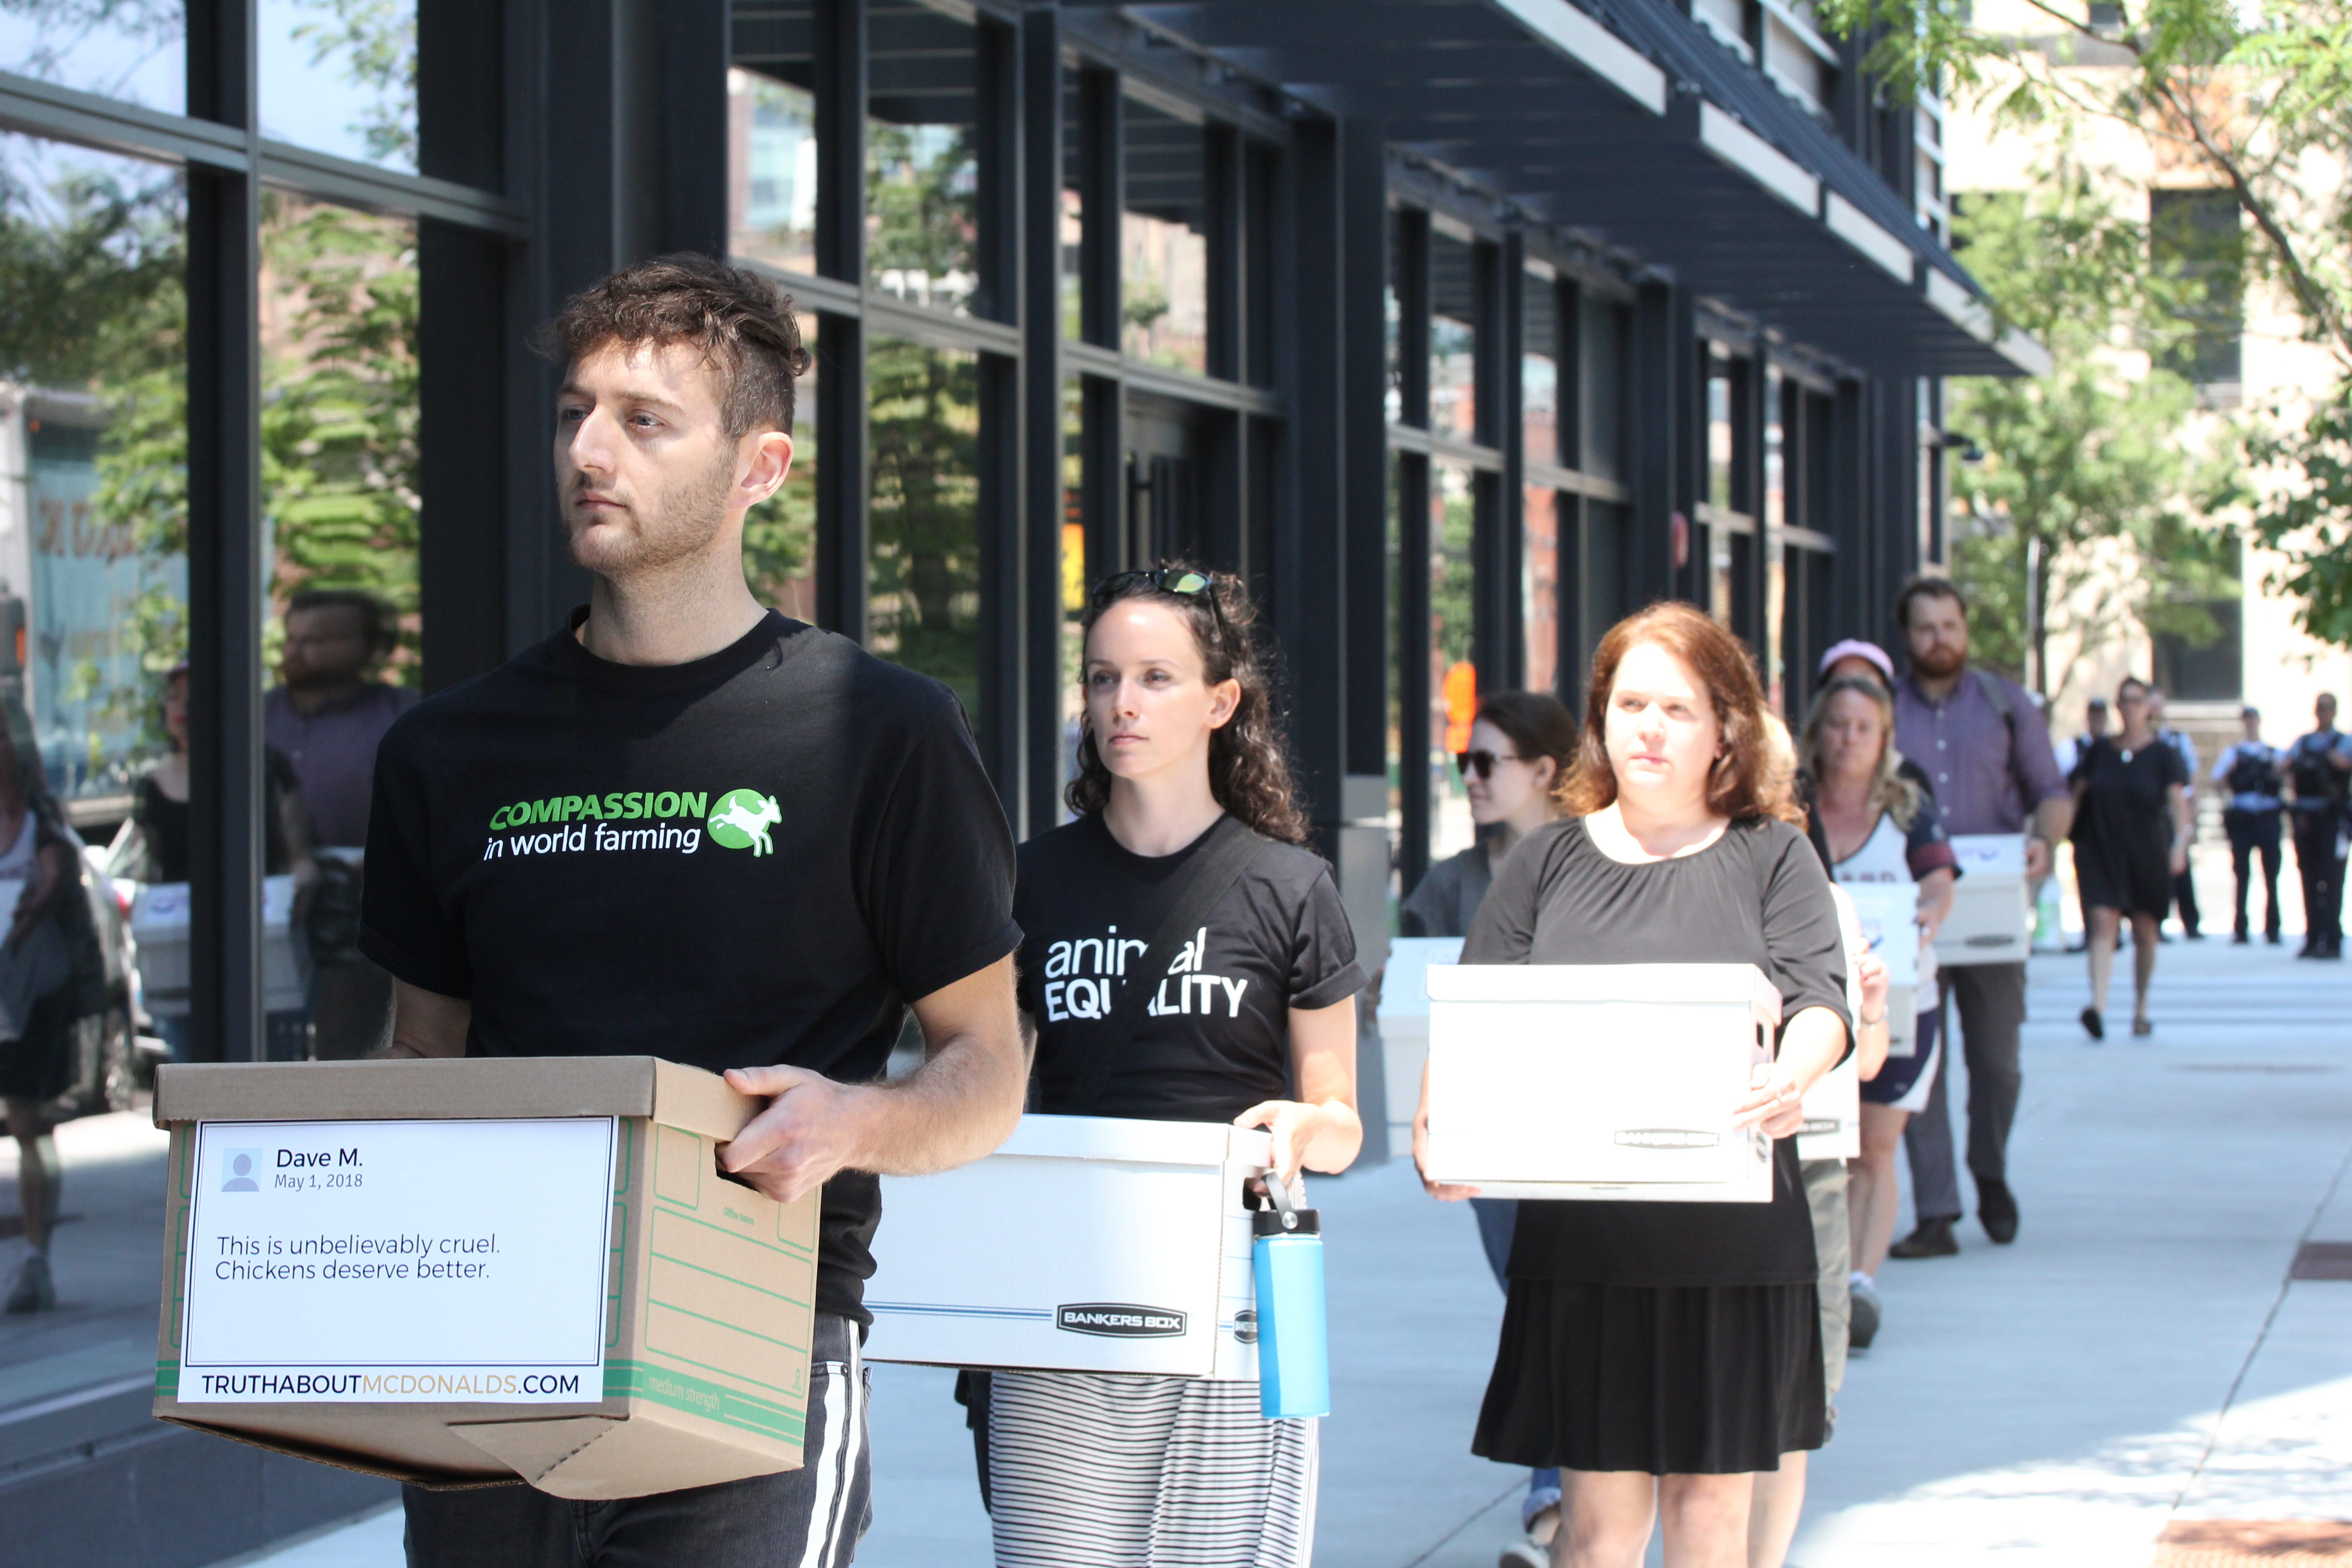 MAPP student, Tyler Hazard is with Compassion in World Farming, and a few other animal protection groups came together to hand-deliver more than 200,000 petition signatures asking McDonald's to do better for chickens.